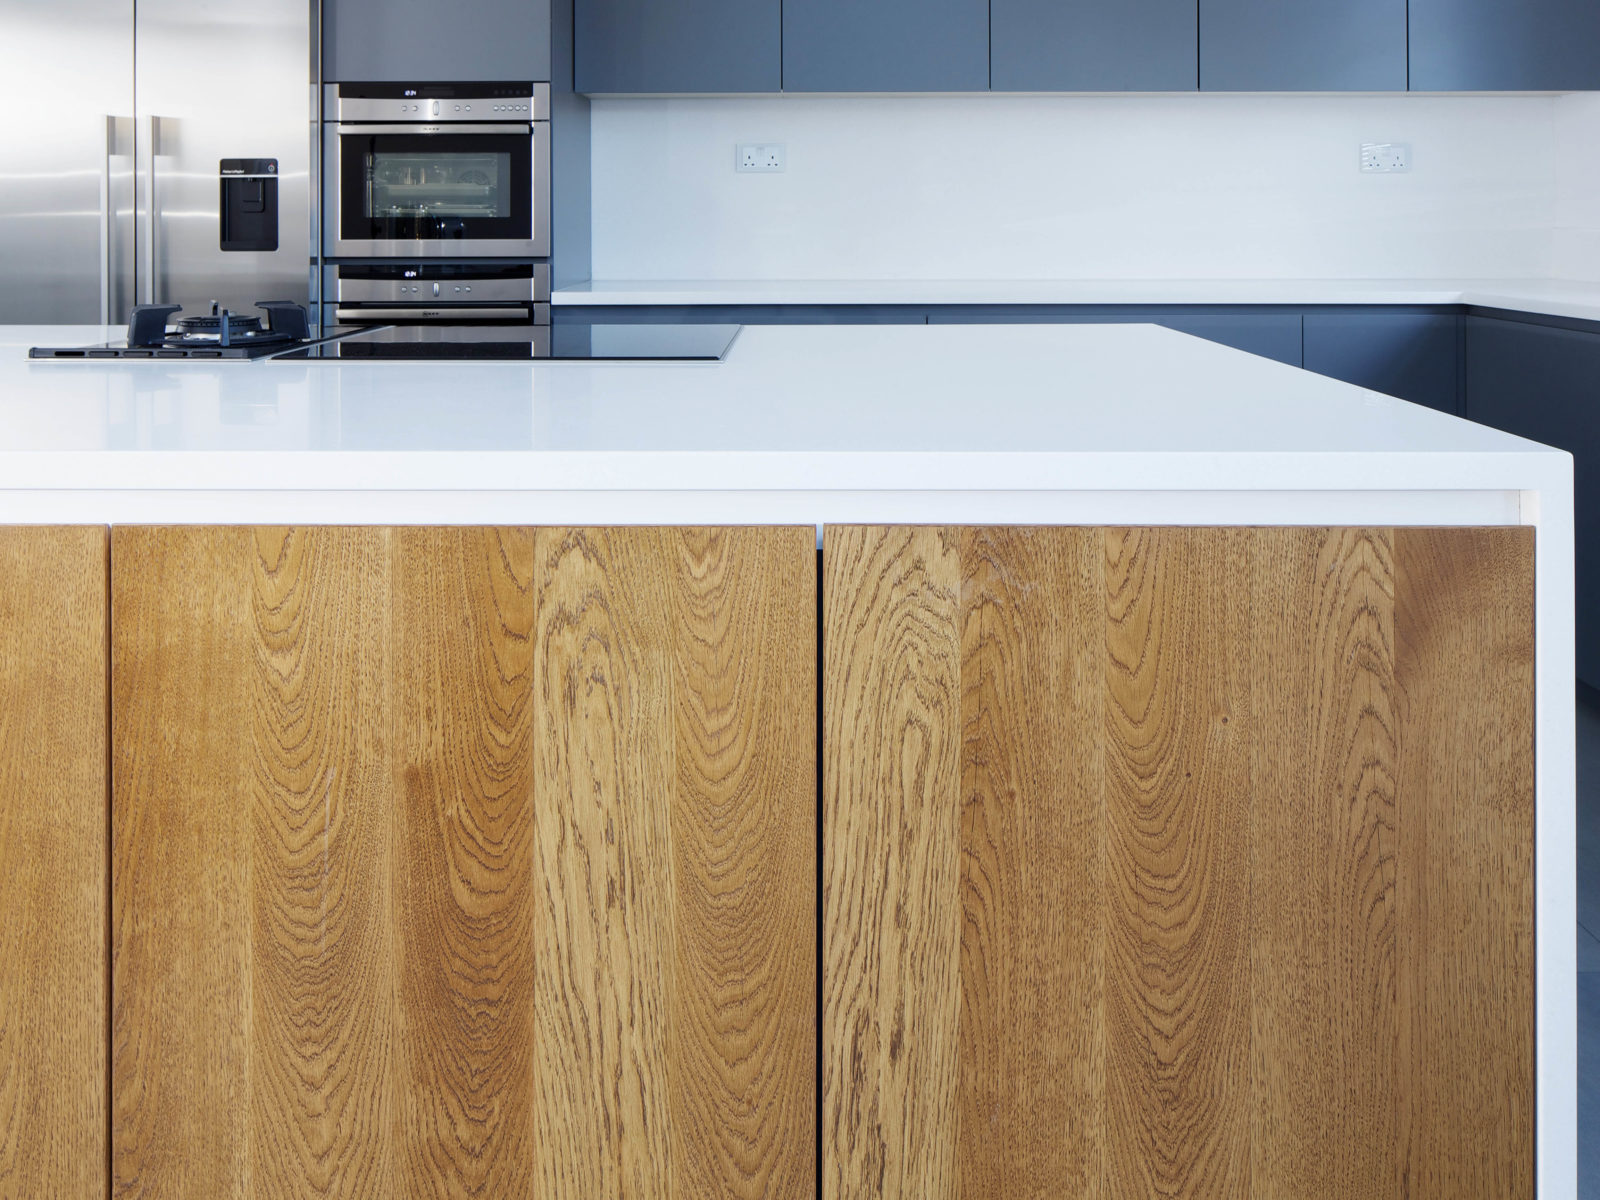 Handless kitchen island with solid oak doors and Antartica Corian worktop